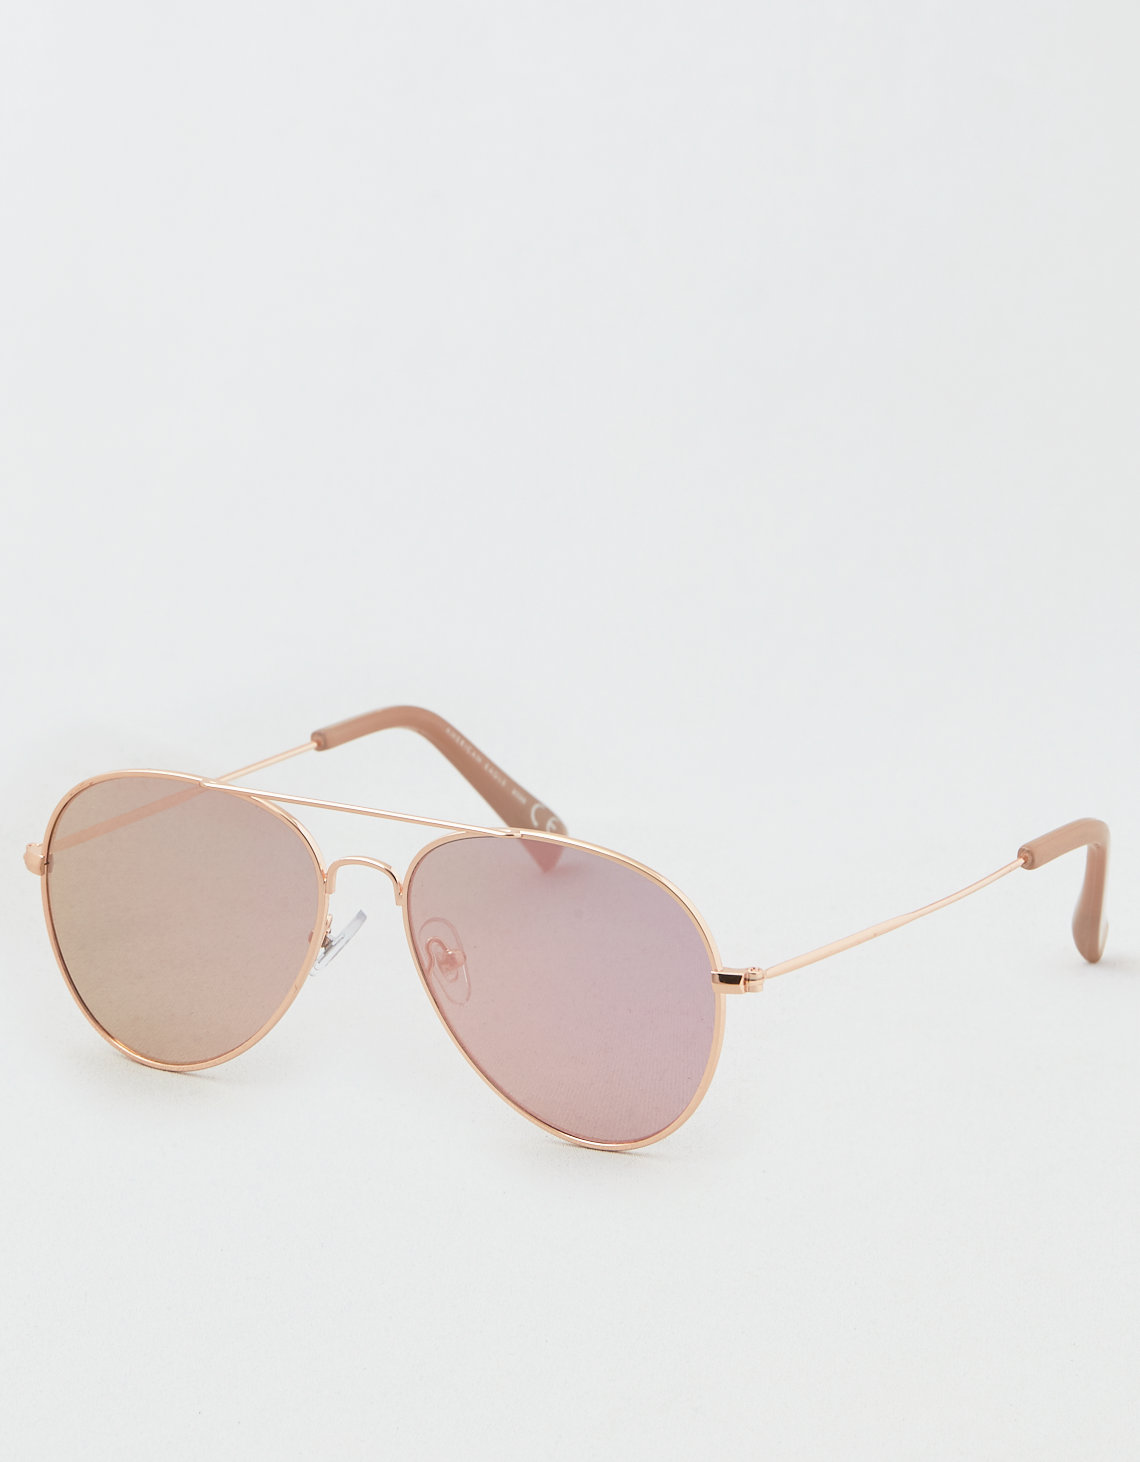 AE Rose Gold Flat Lens Aviator Sunglasses